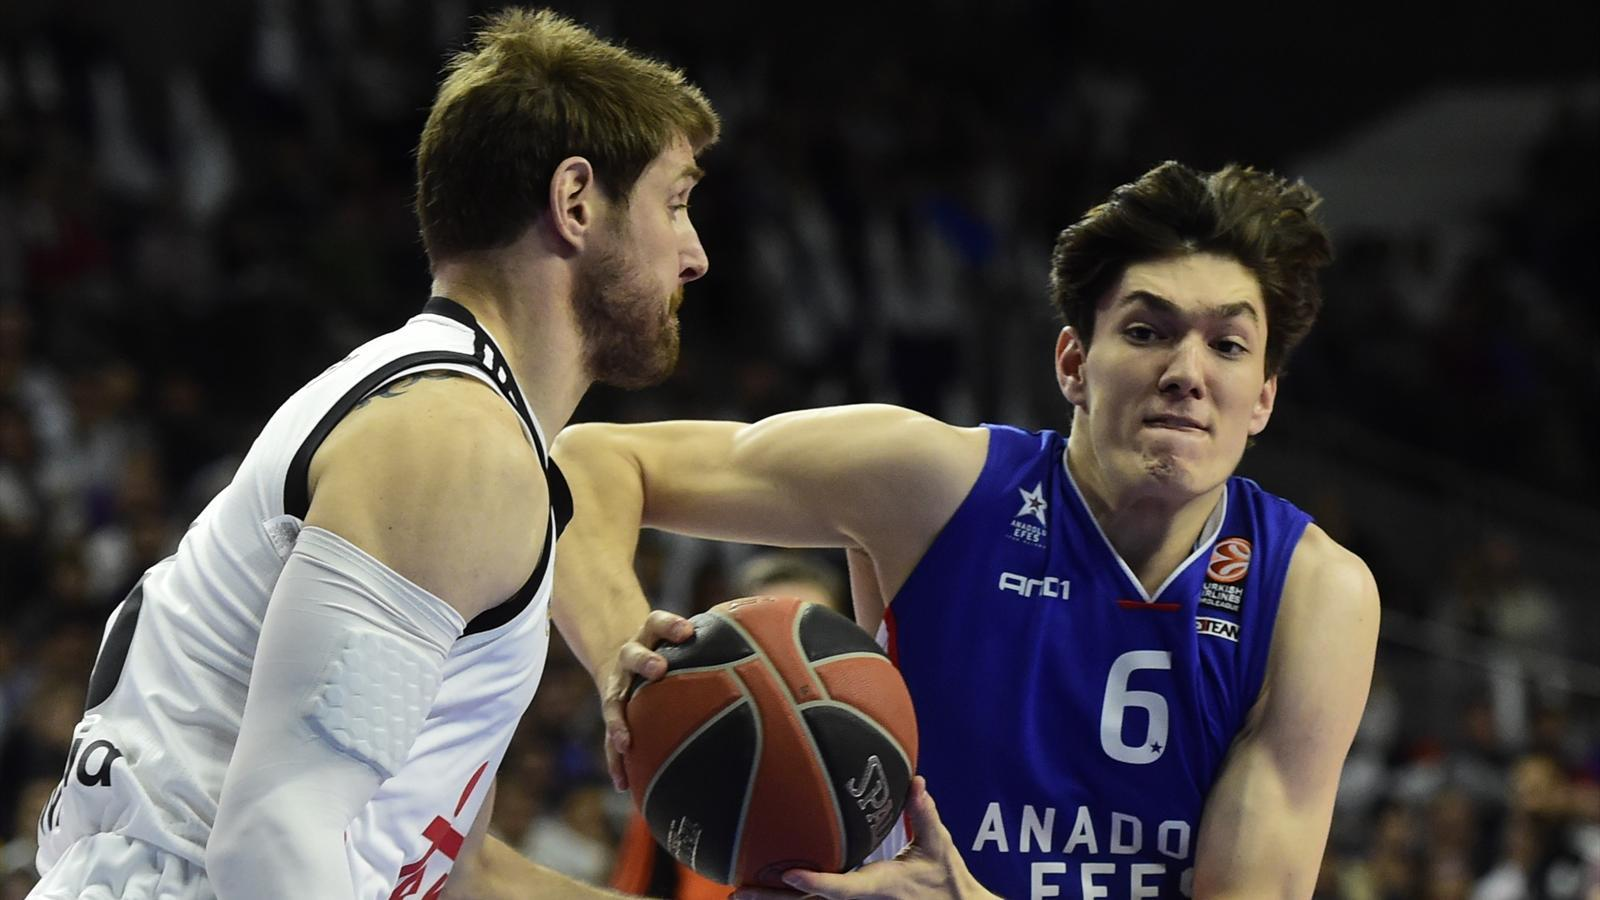 Report: Cedi Osman to visit Cavs, will take NBA out